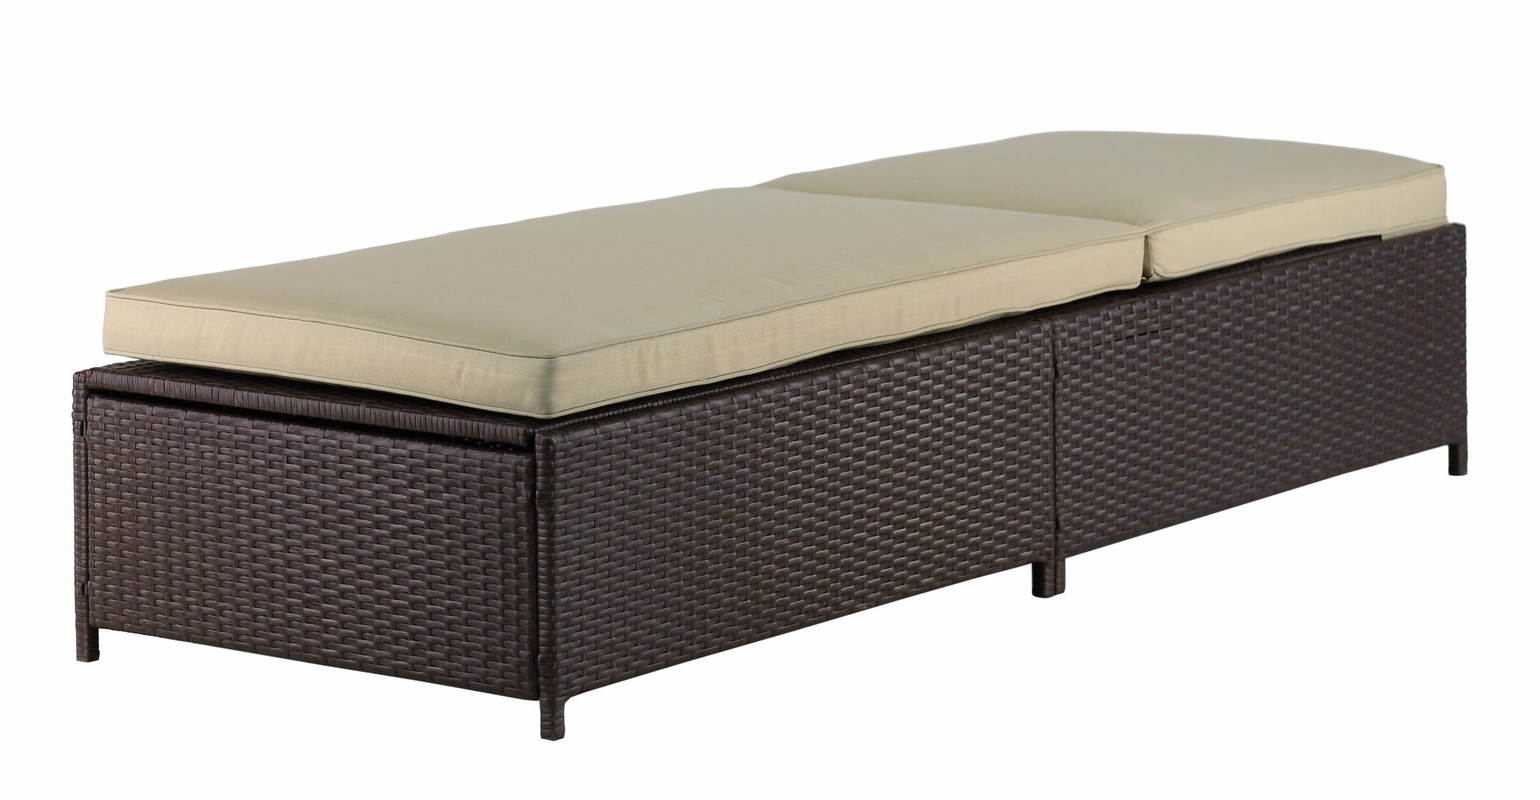 Most Recent Serta At Home Laguna Outdoor Storage Chaise Lounge & Reviews (View 11 of 15)